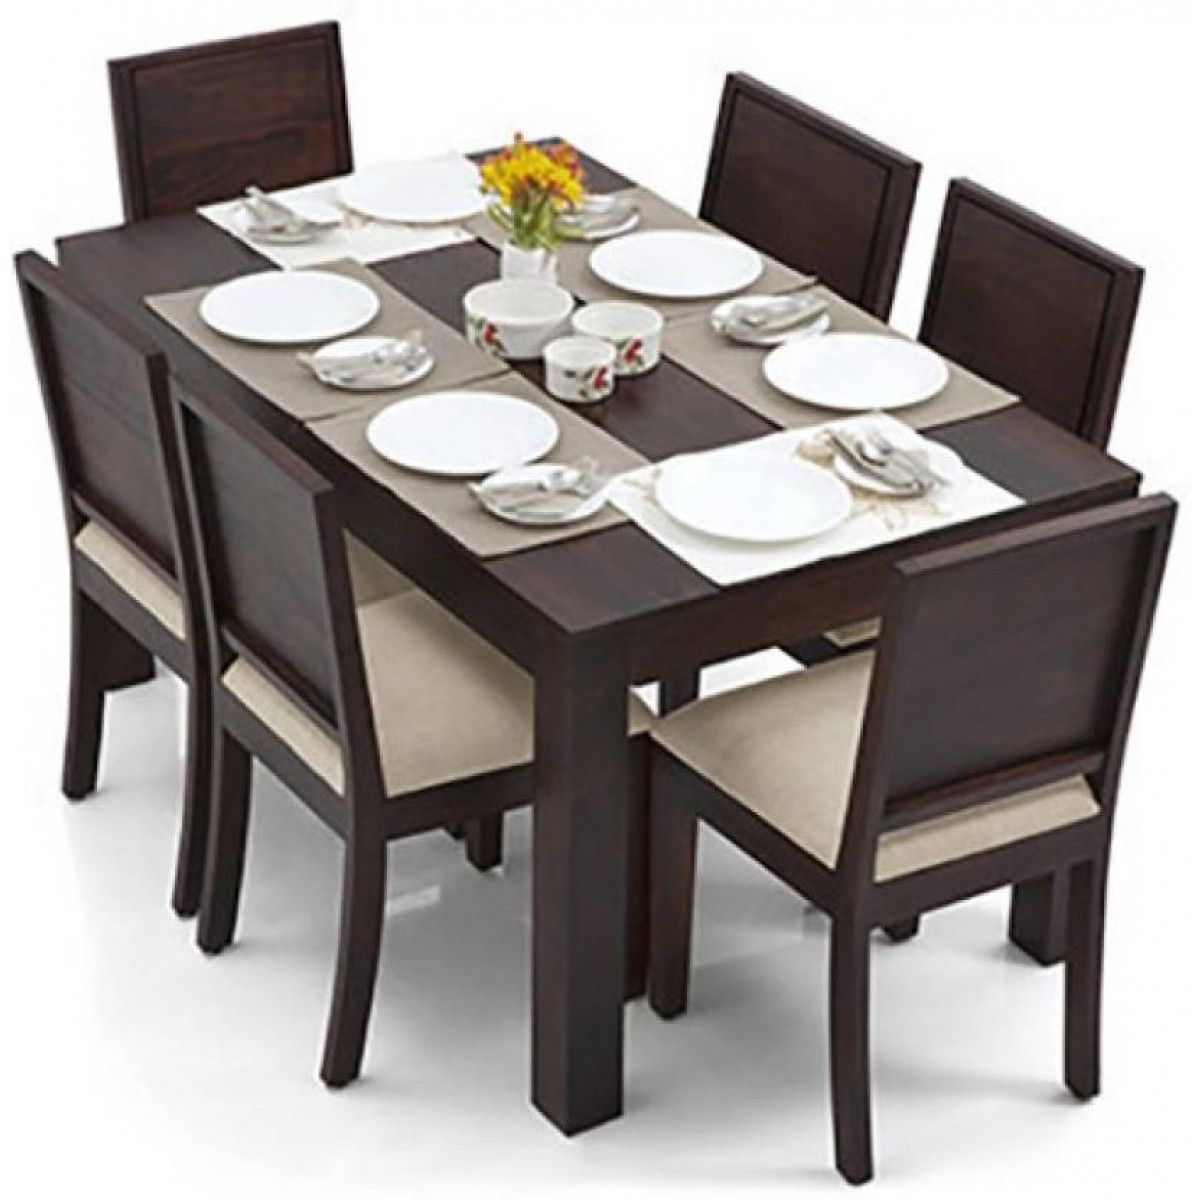 It S A Pure Arabia Styled 6 Six Seater Dining Table Set Rosewood Sheesham Mahogany 6 Seater Dining Table Wooden Dining Table Designs Dinning Table Design